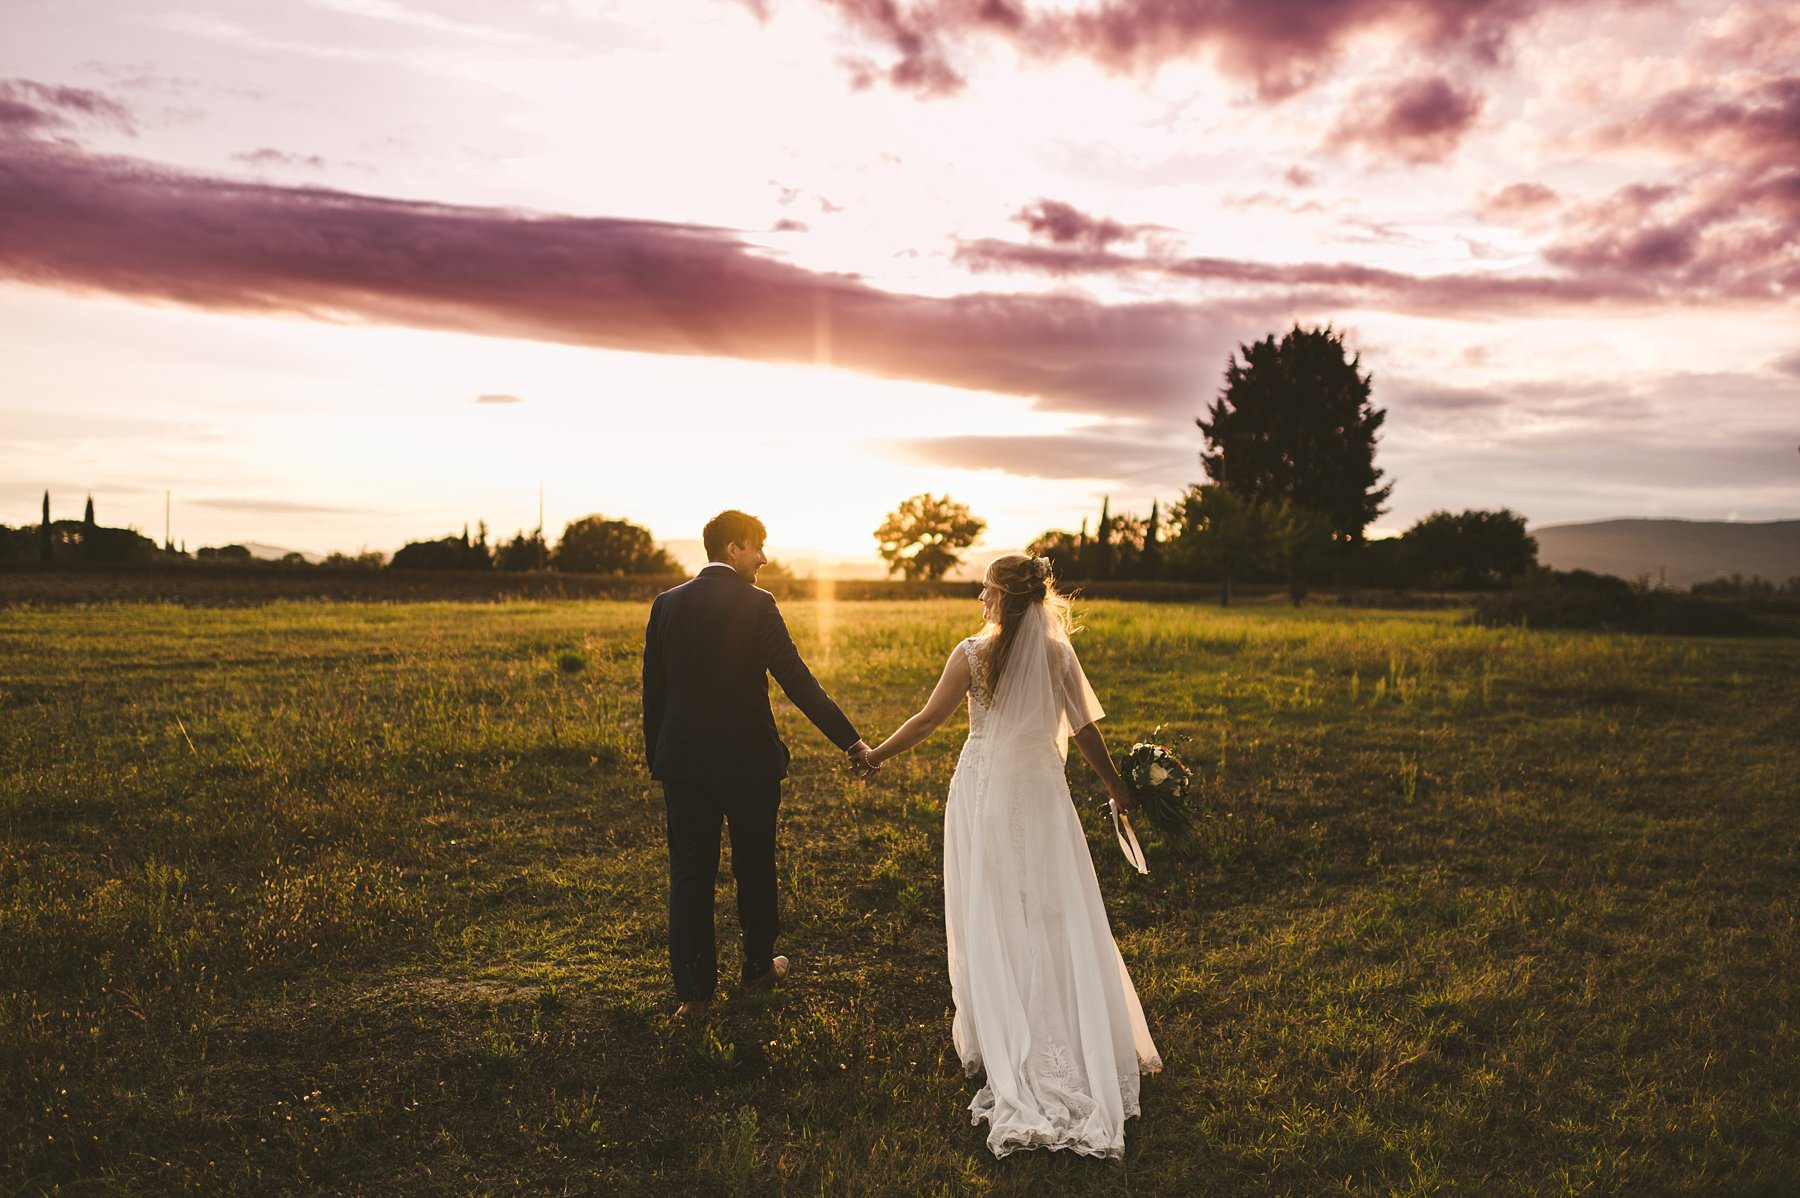 Lovely couple from UK decided to get married in Italy at Siena and spend portrait time in the countryside at the sunset